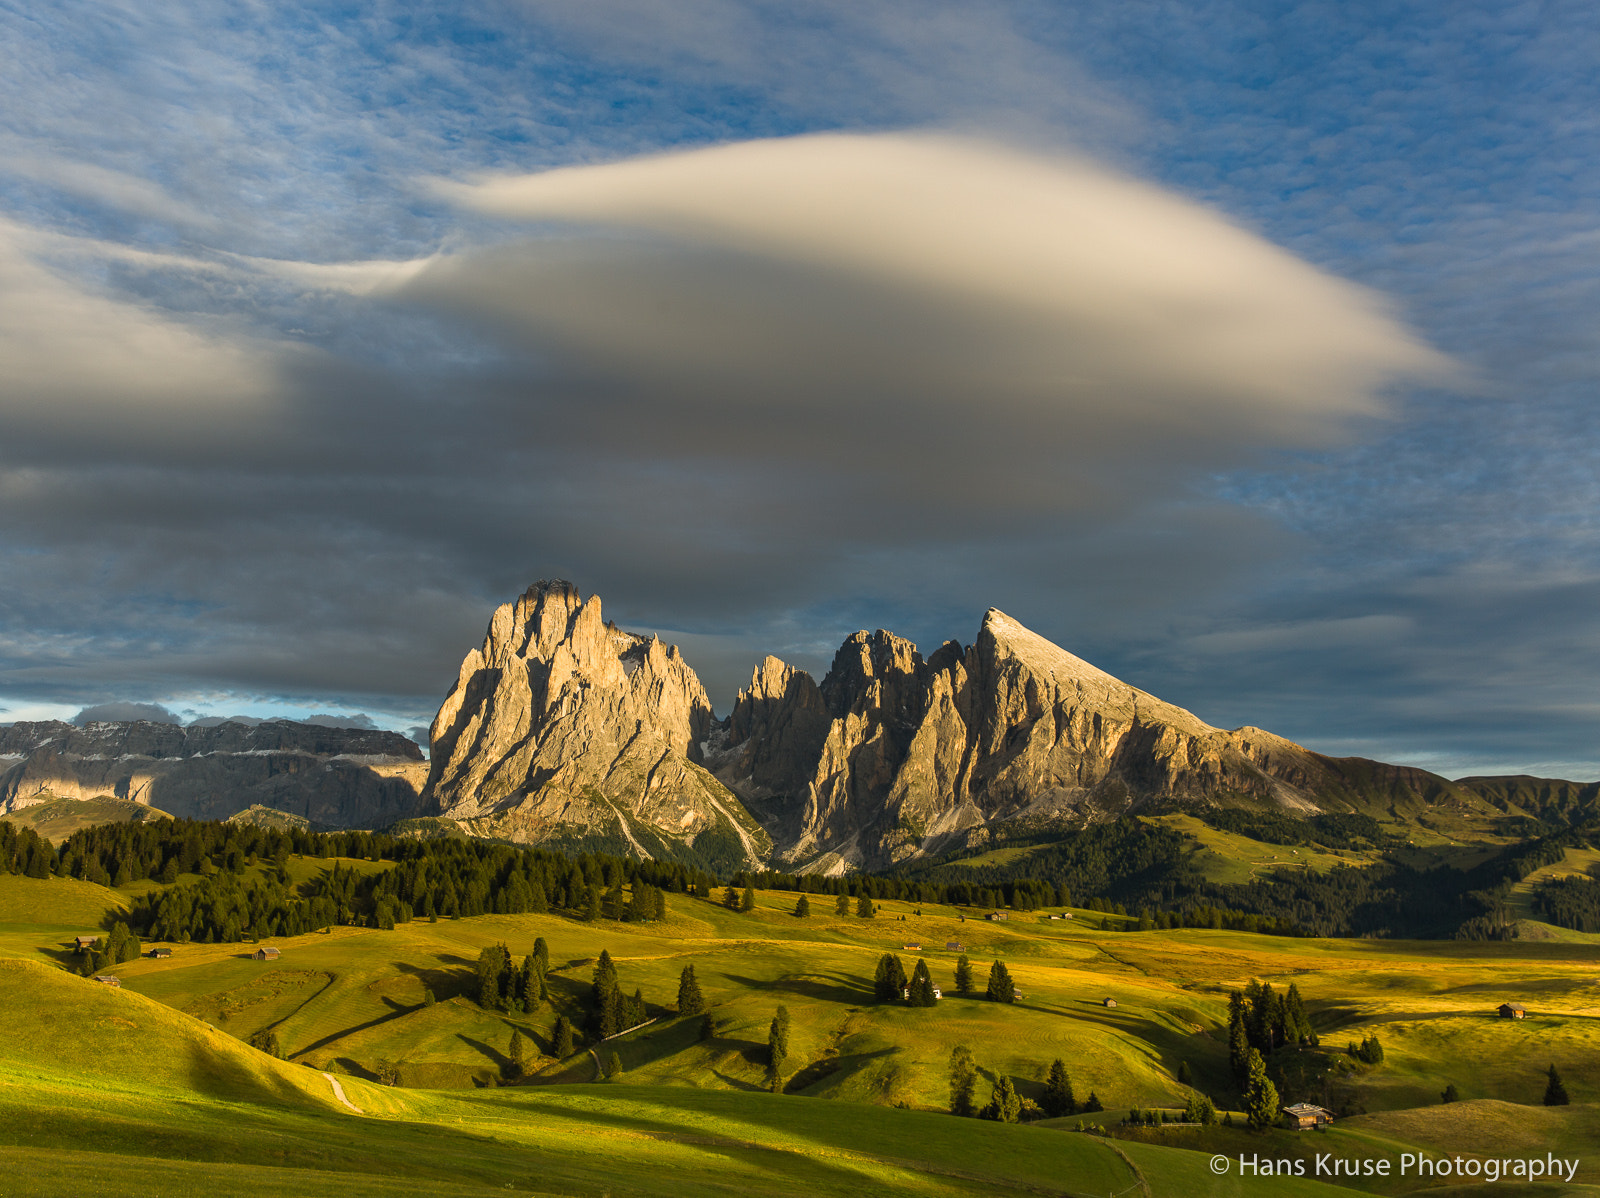 Photograph Alpe di Siusi with lenticular clouds by Hans Kruse on 500px